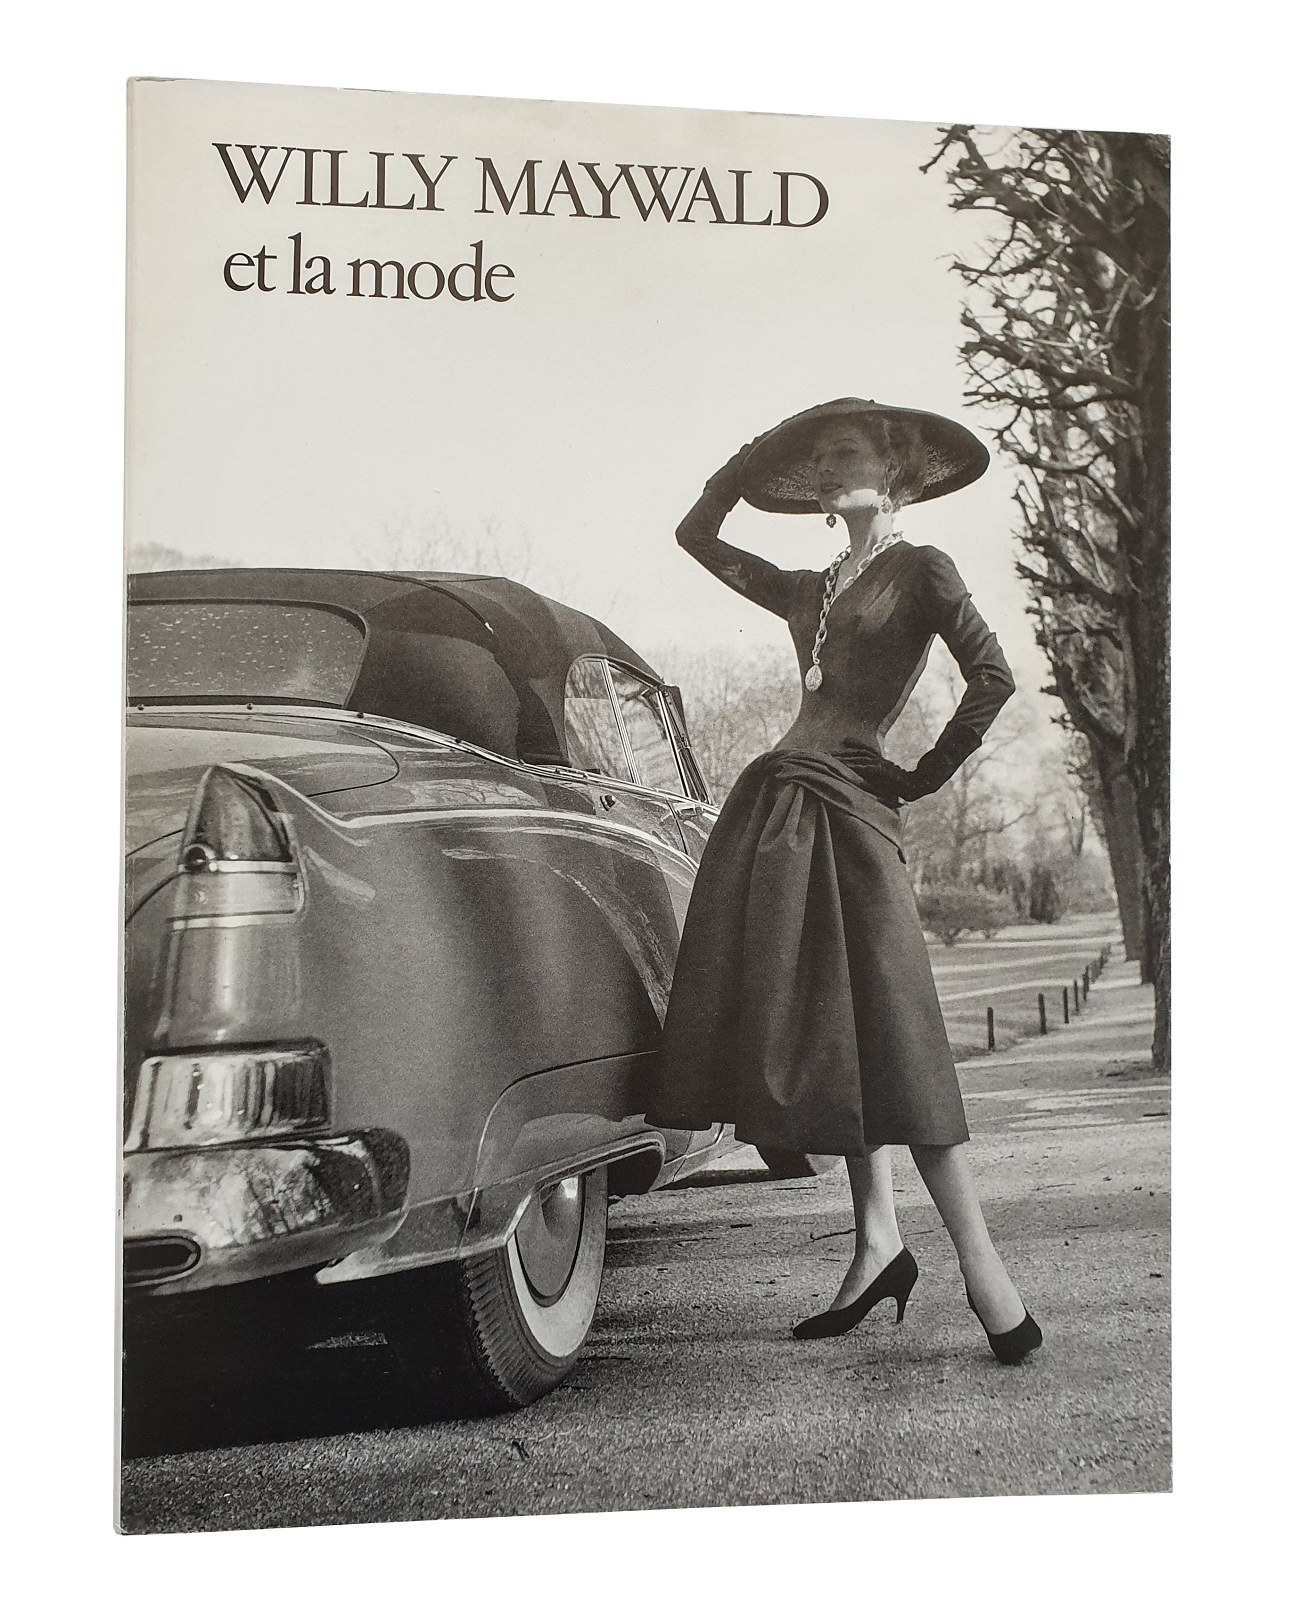 Willy Maywald et la mode